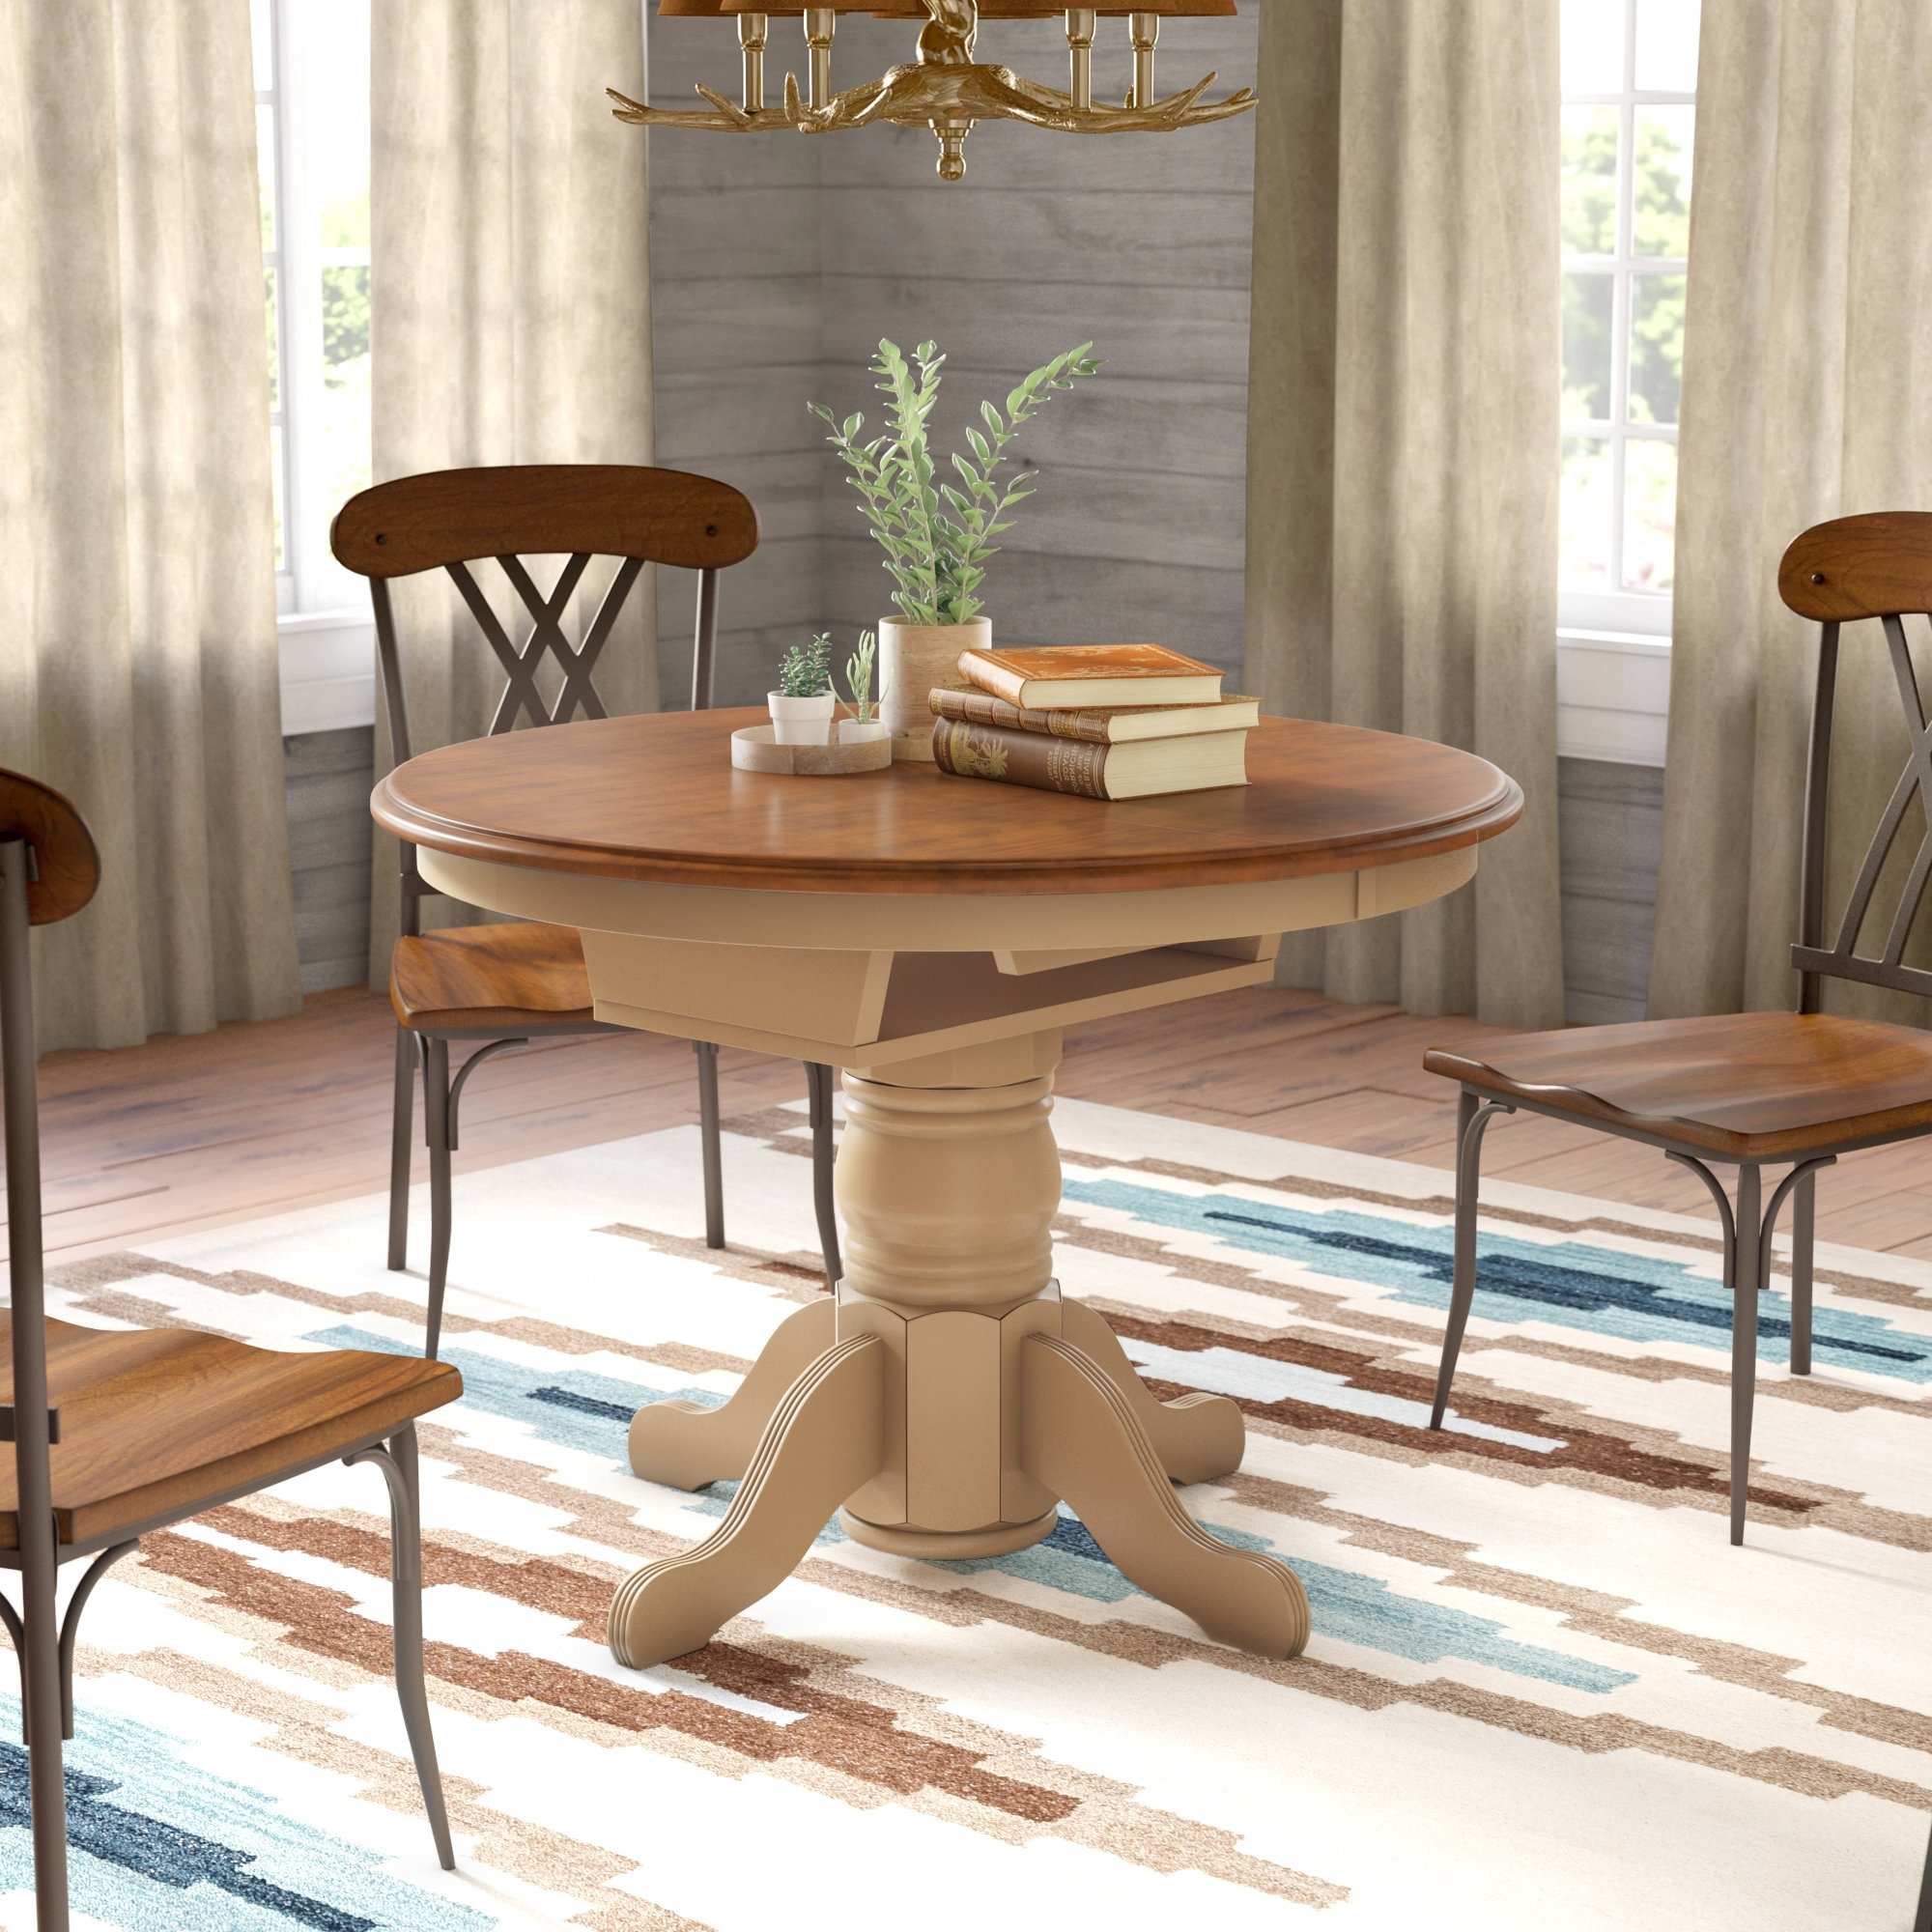 Most Current Solid Wood Dining Tables Inside Agrihan Extendable Solid Wood Dining Table (View 4 of 25)